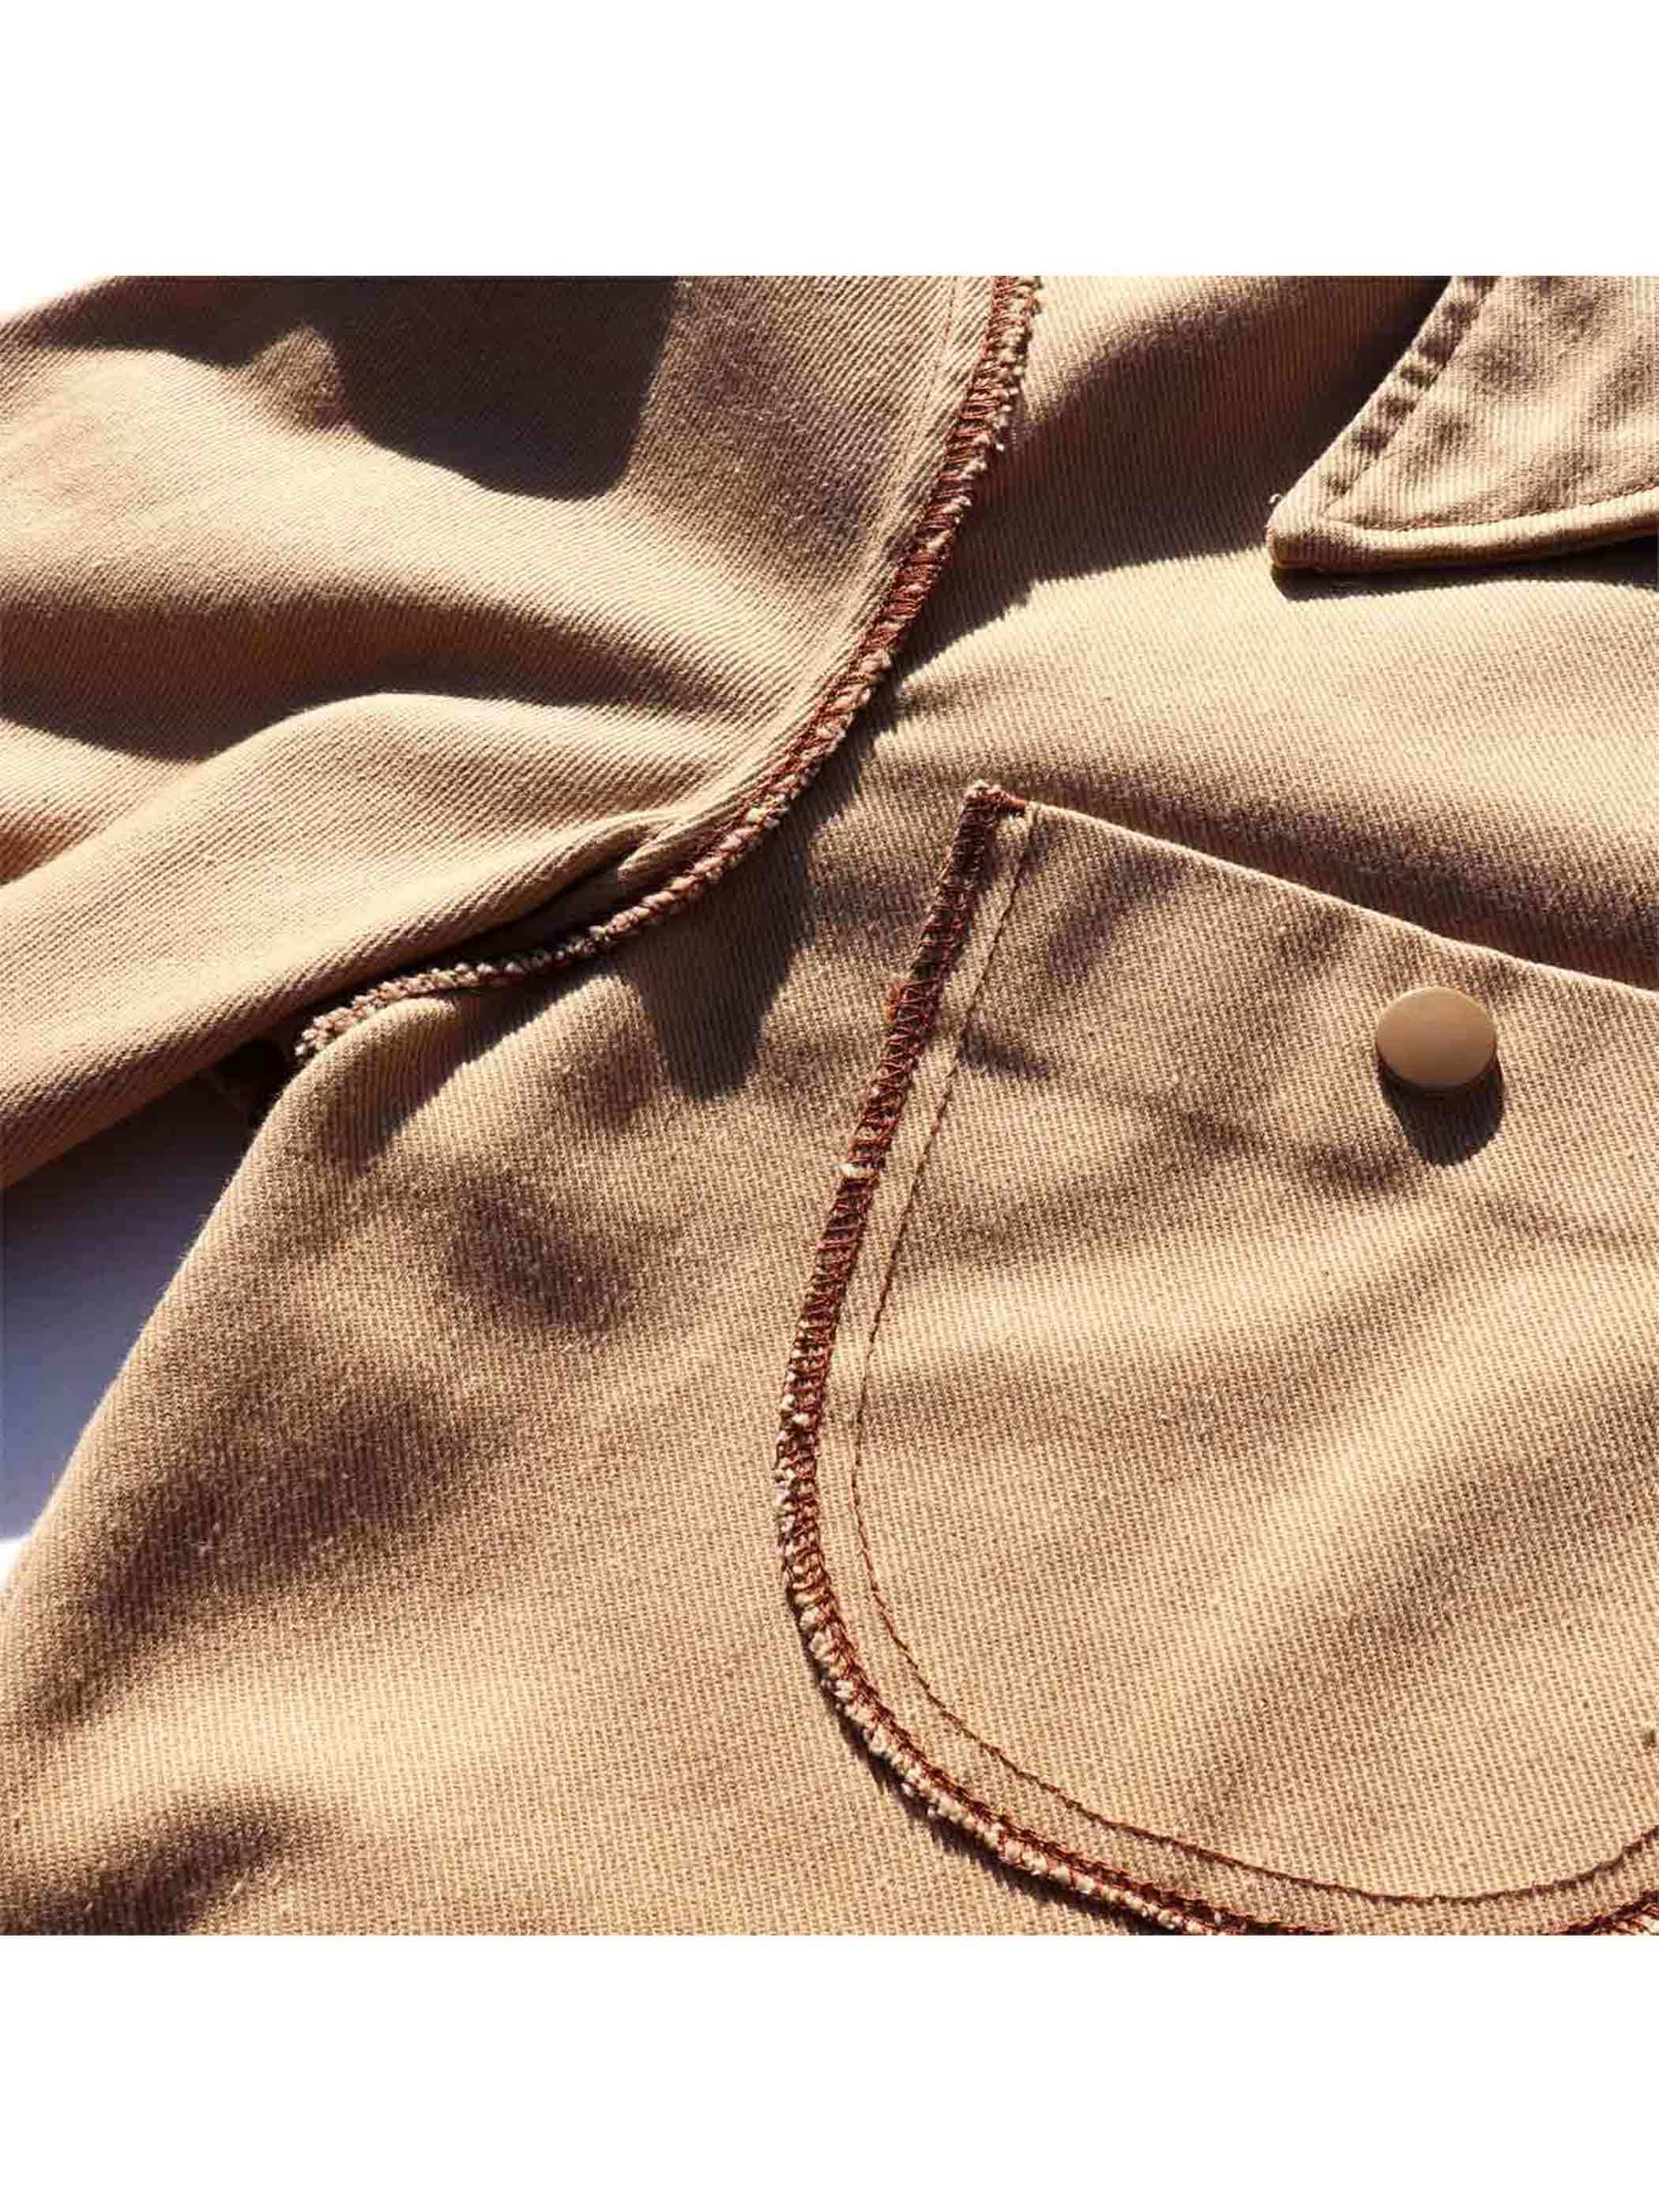 "70's MONTGOMERY WARD ""INSIDE OUT"" Cotton Twill Jacket [M]"